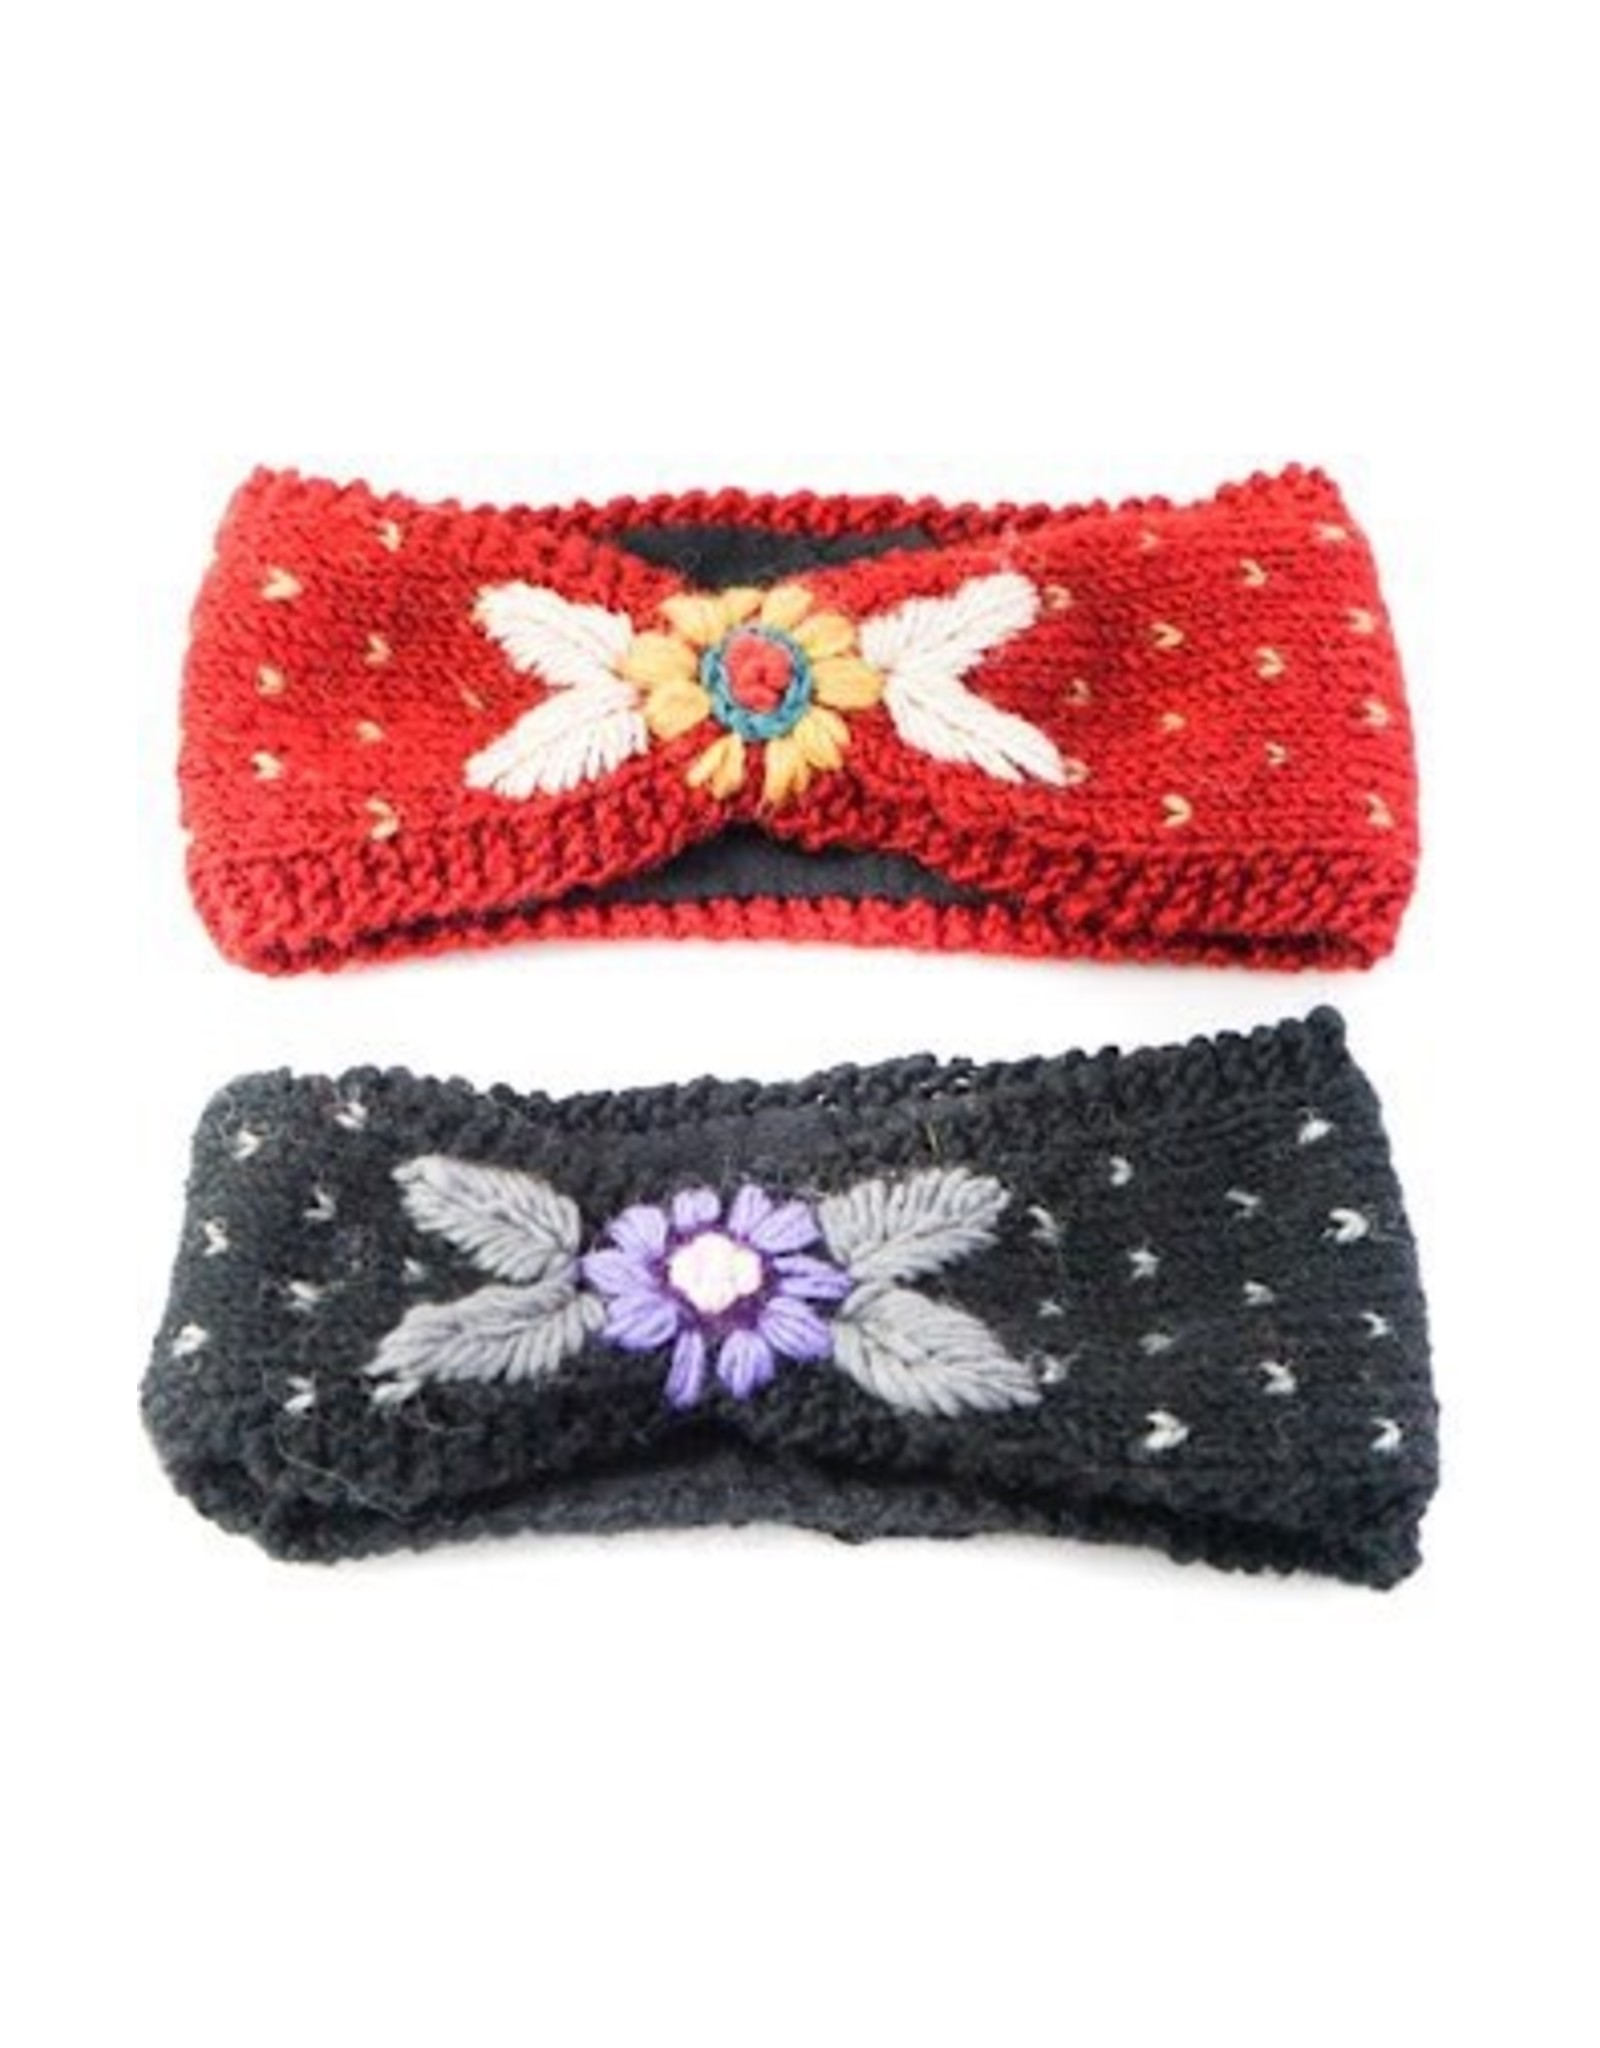 Ganesh Himal Embroidered knit headband, assorted.